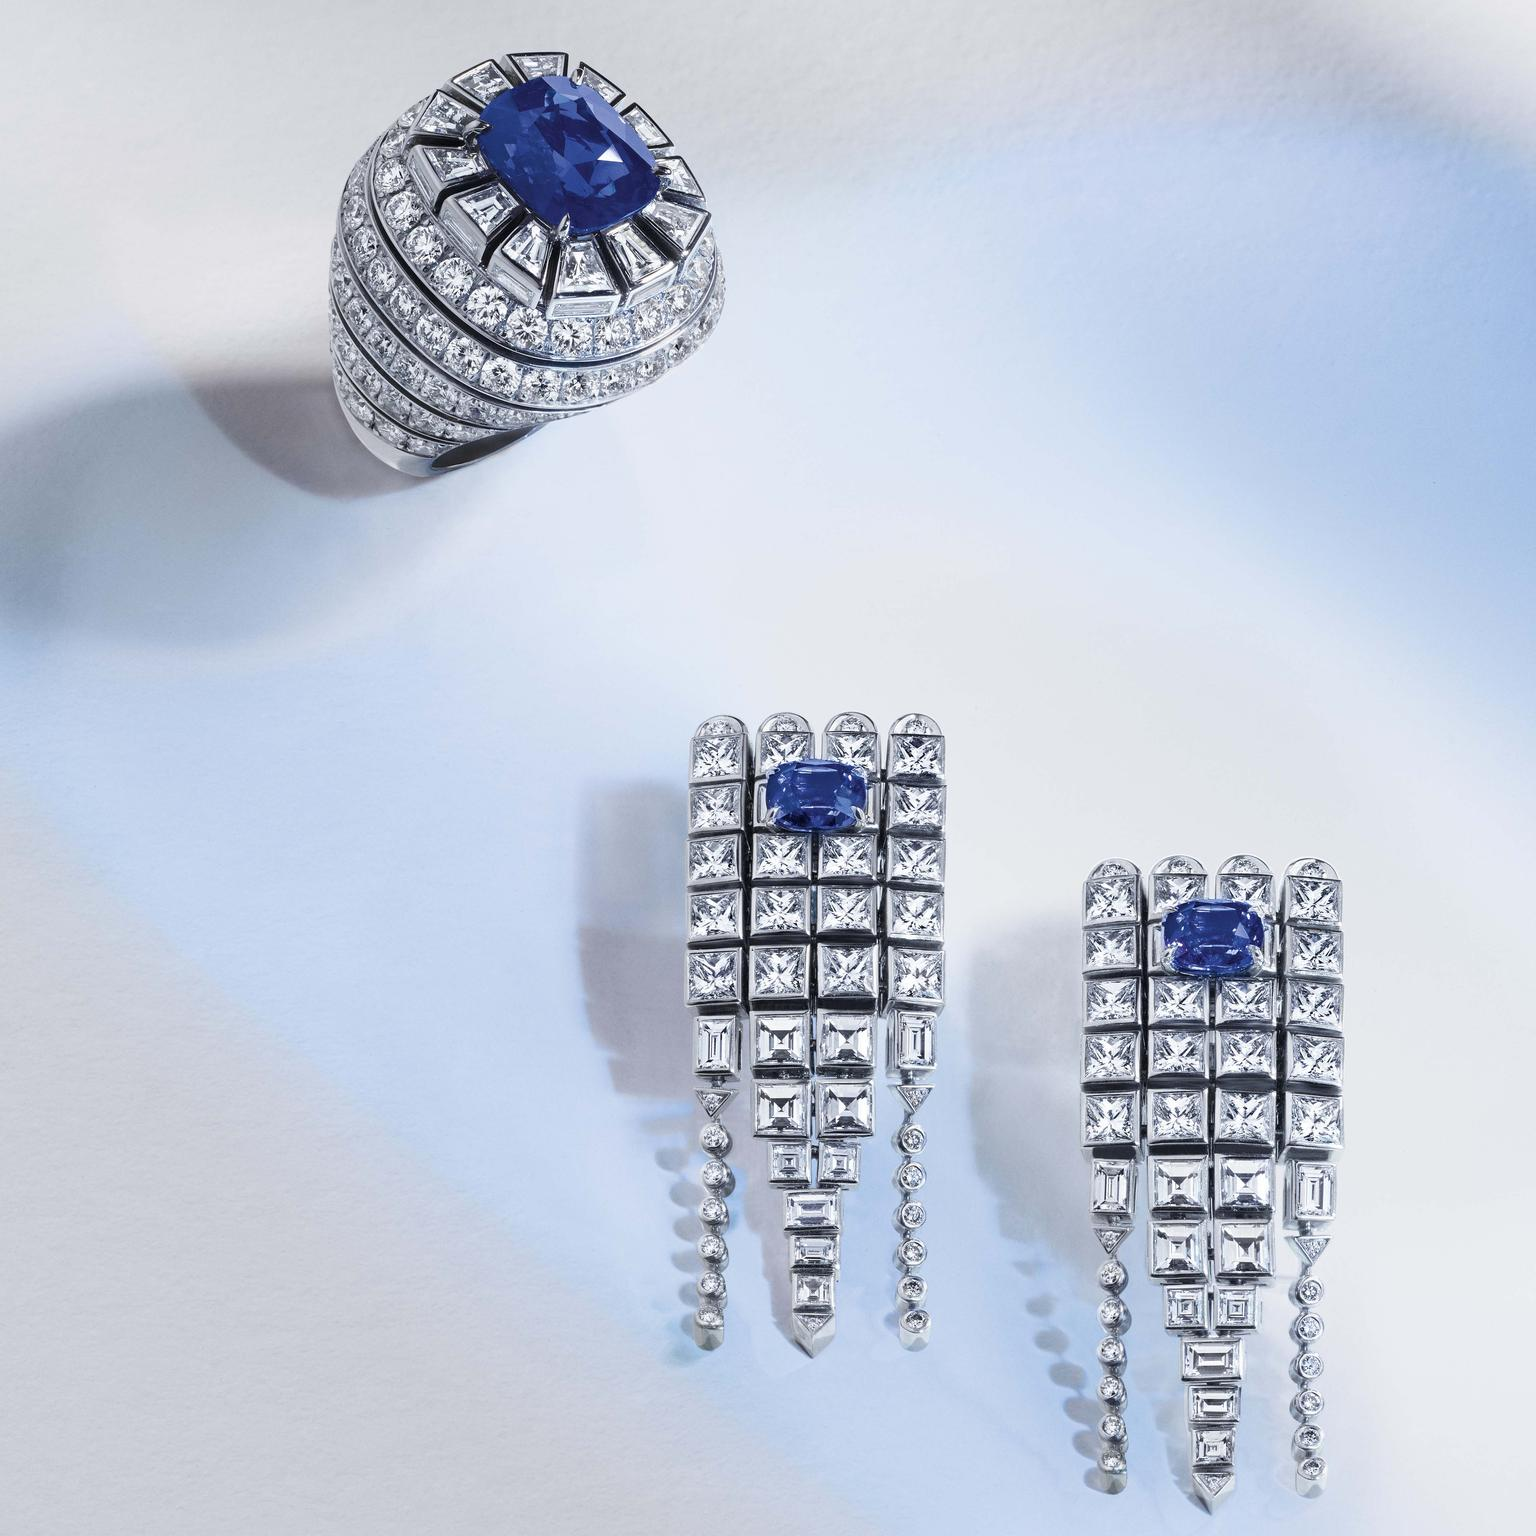 Louis Vuitton Riders of the Knights Le Royaume diamond and sapphire earrings and ring